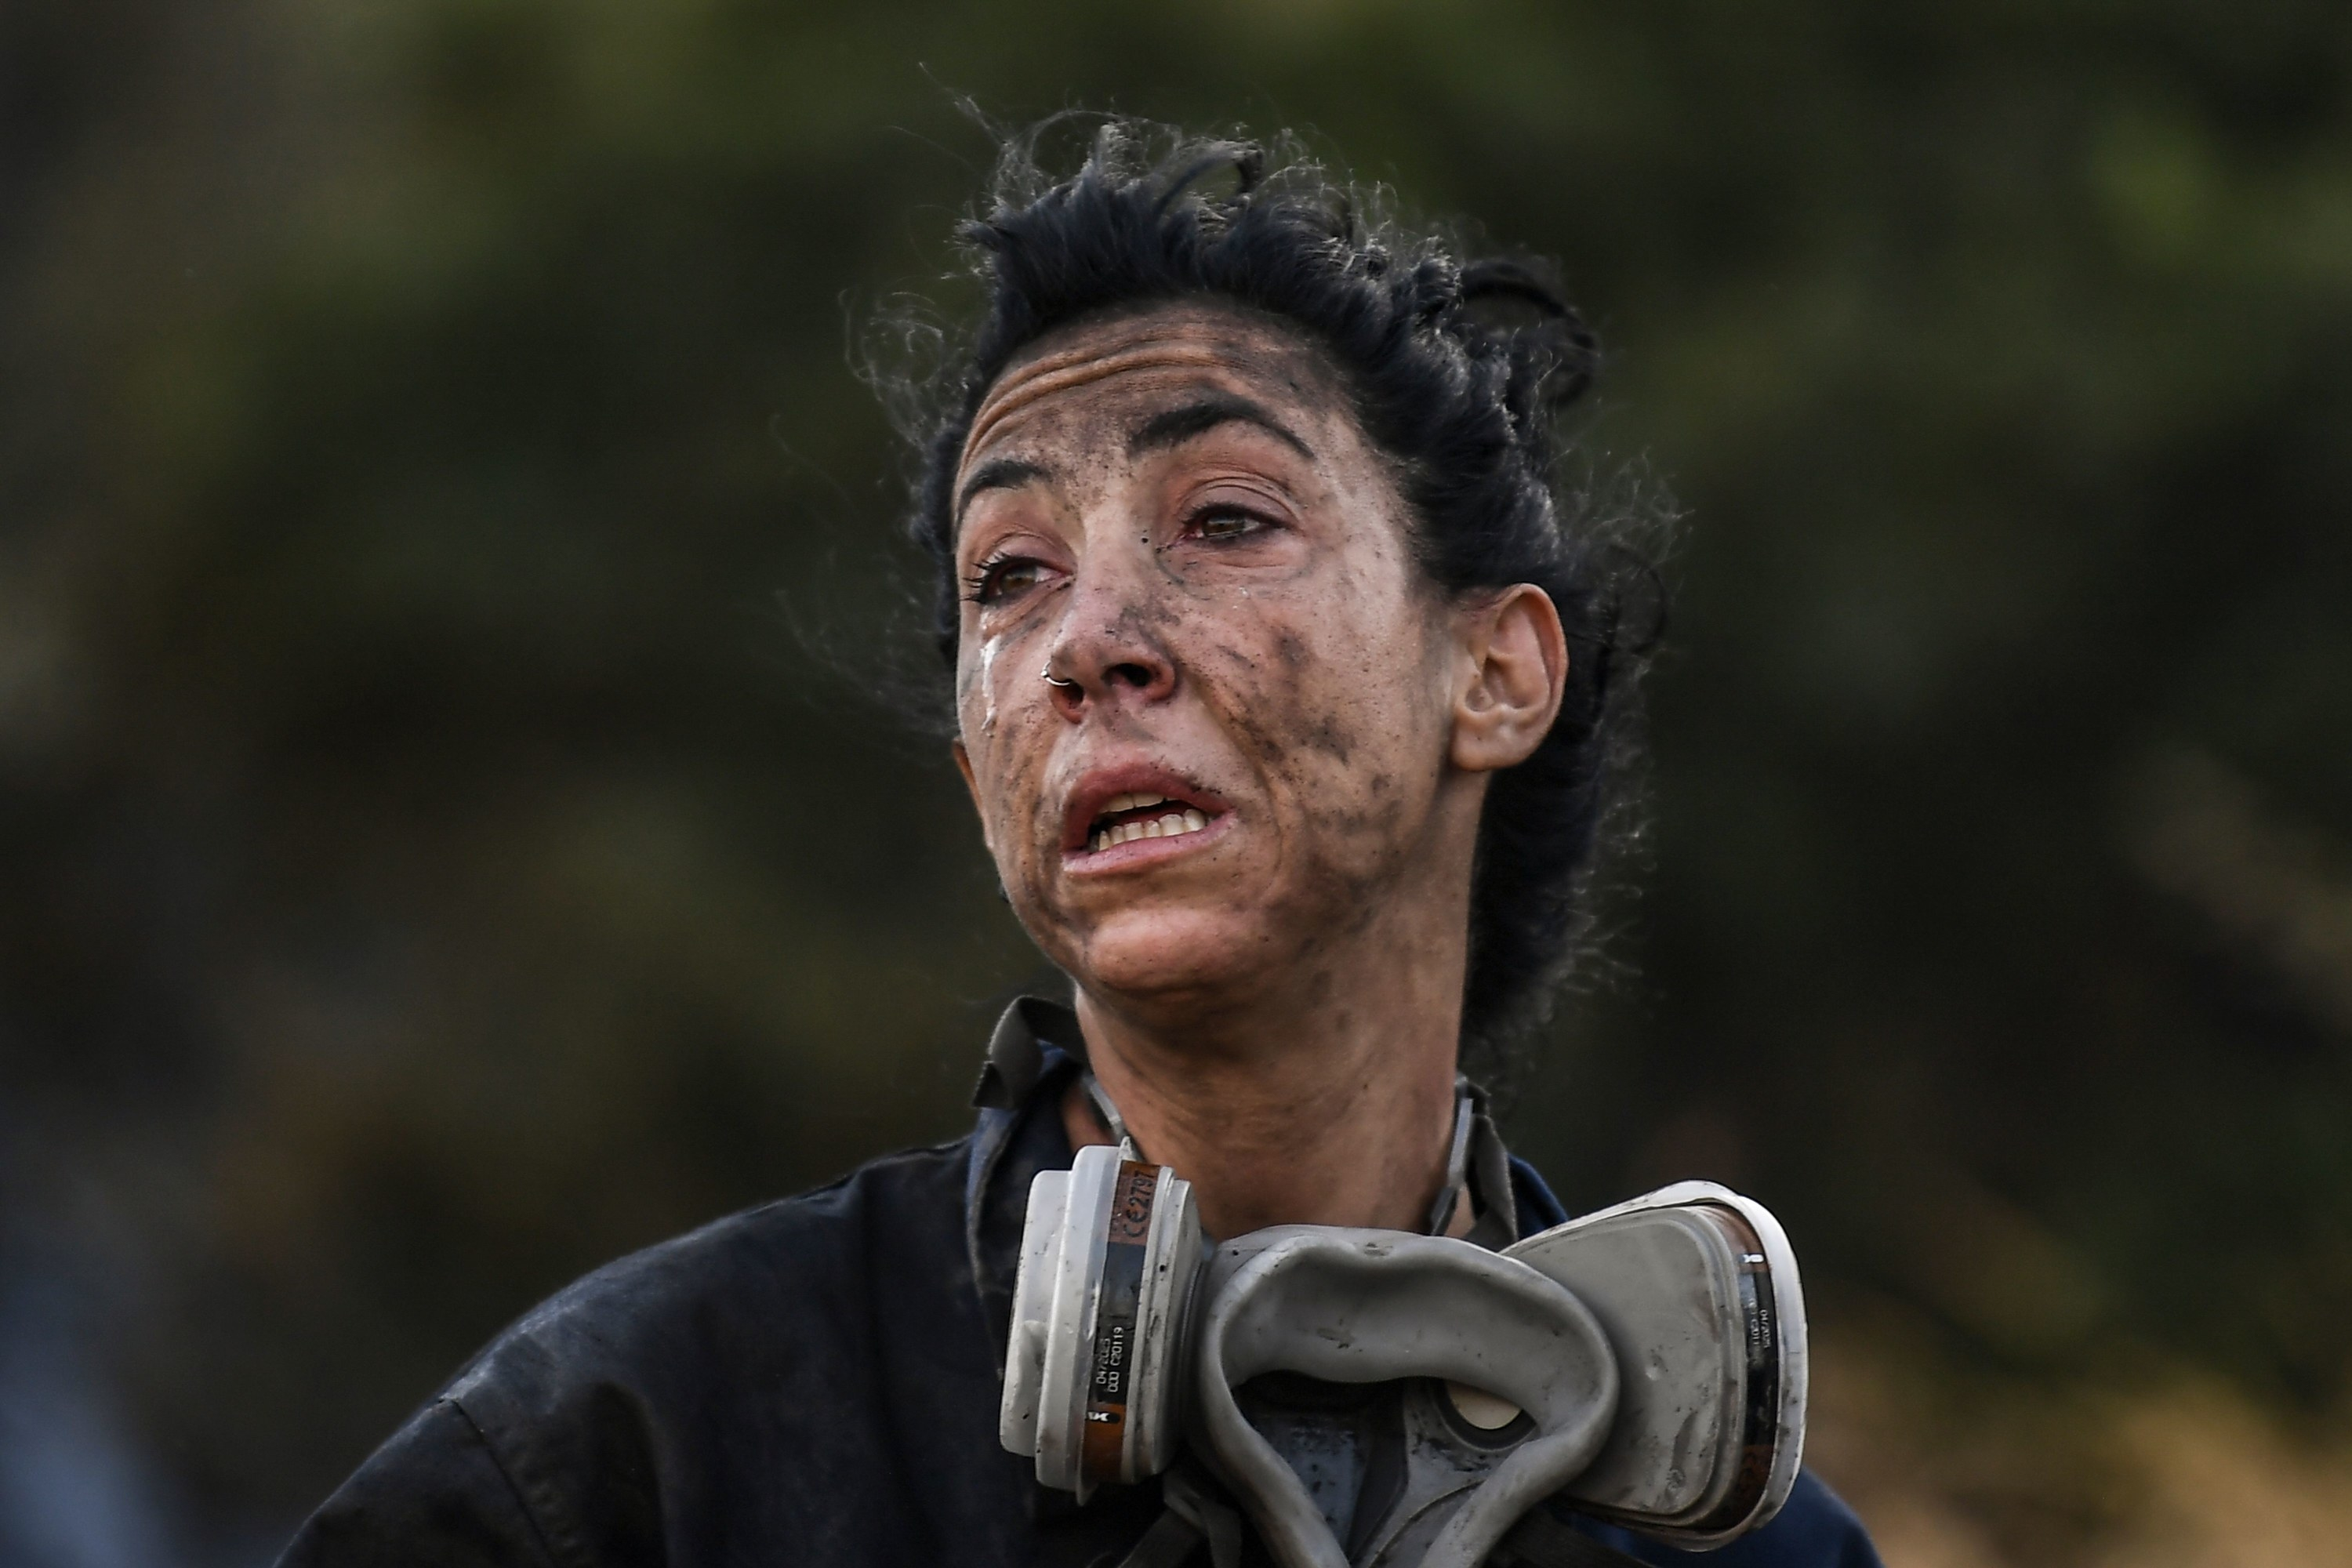 A firefighter with an ash-covered face and a breathing apparatus around her neck grimaces